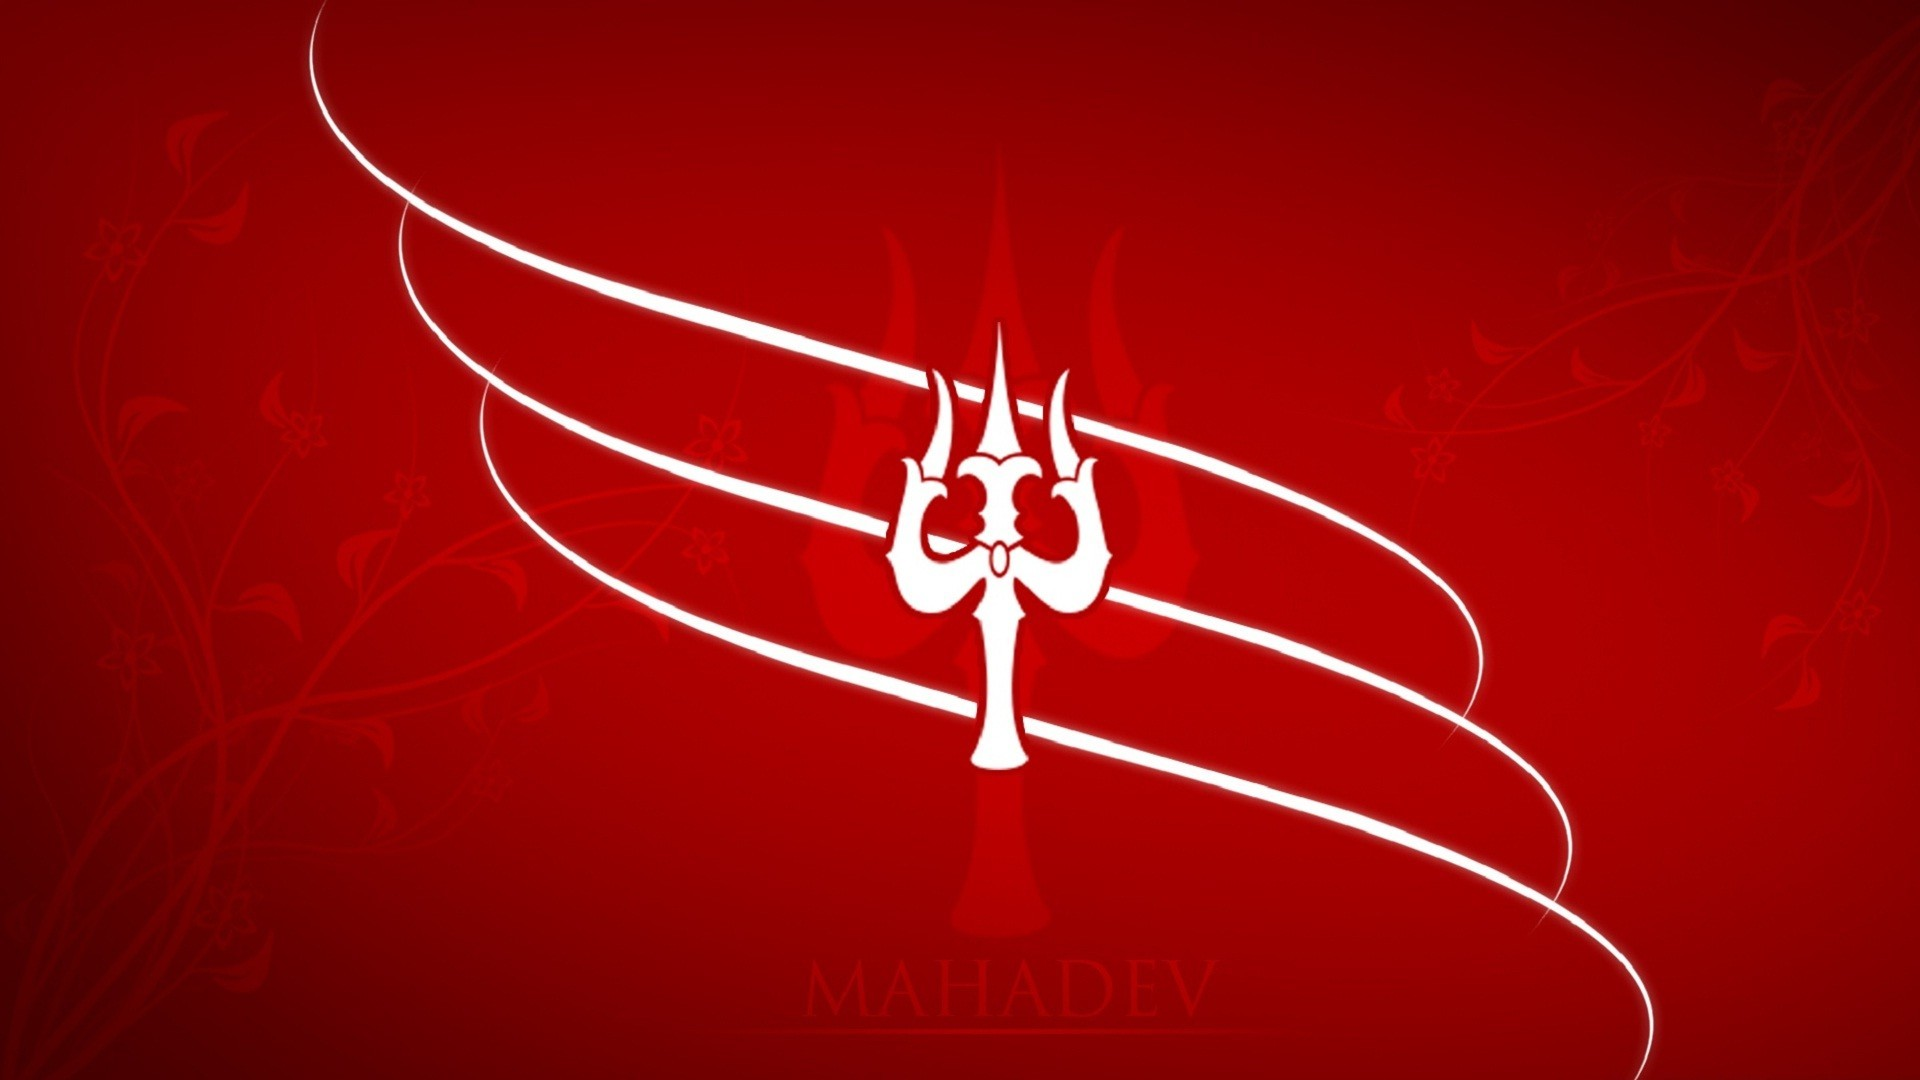 Hd Shiva Wallpapers 72 Images